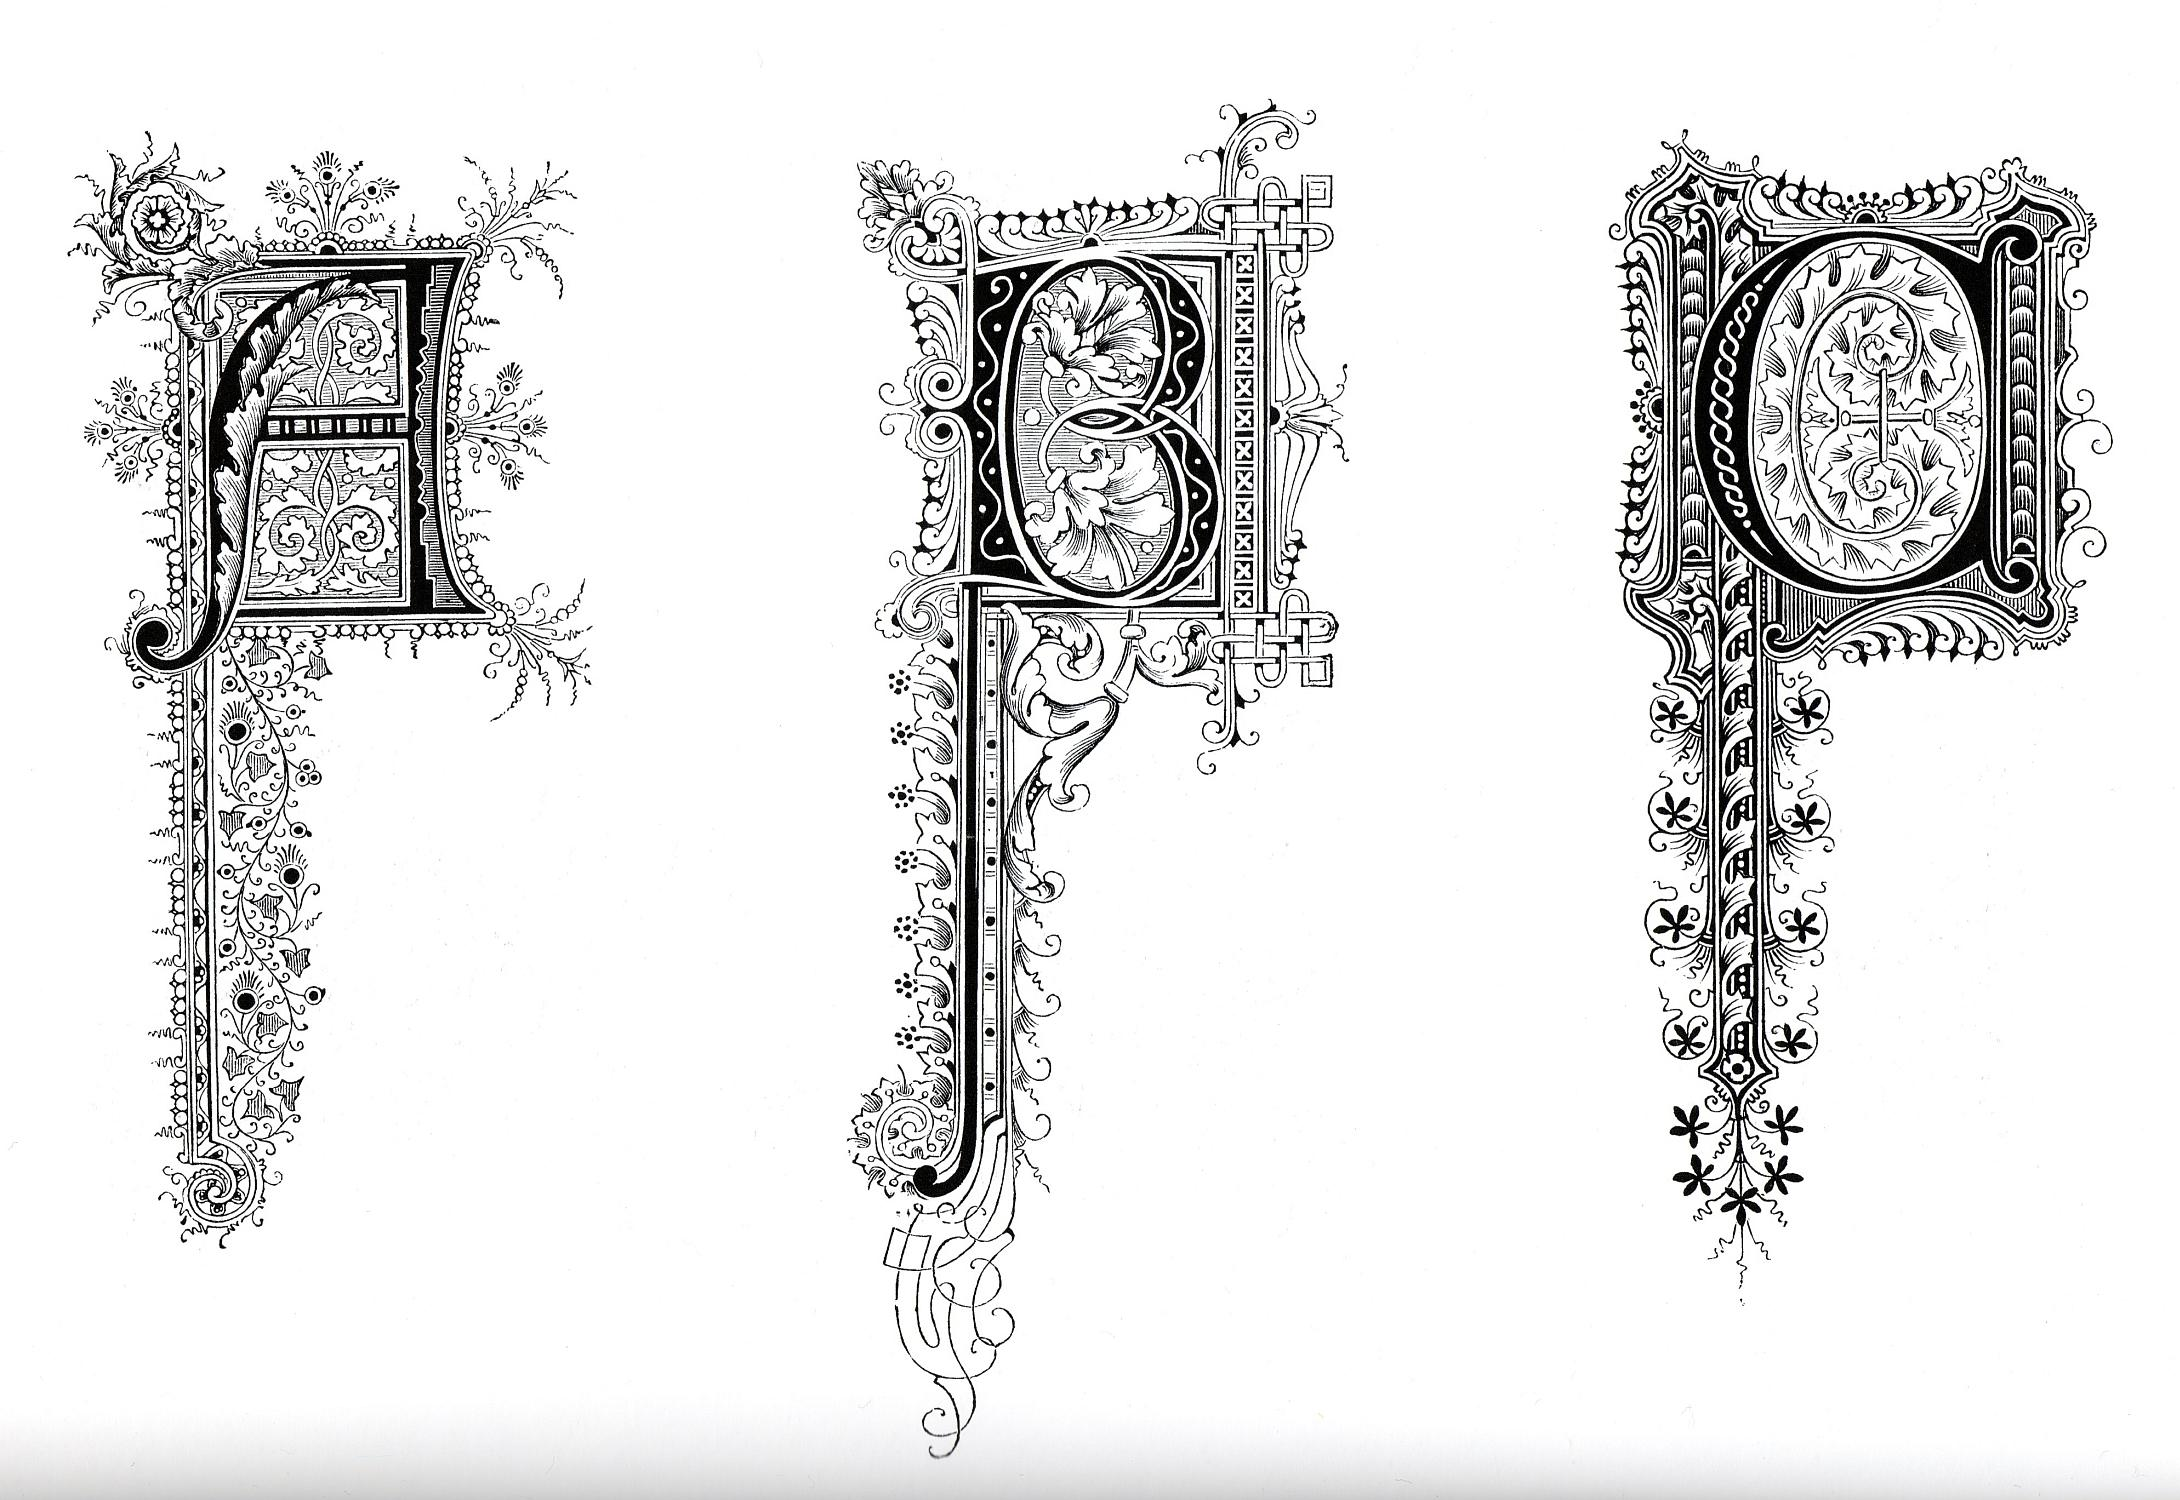 Illuminated Letters Alphabet Coloring Pages. Illuminated